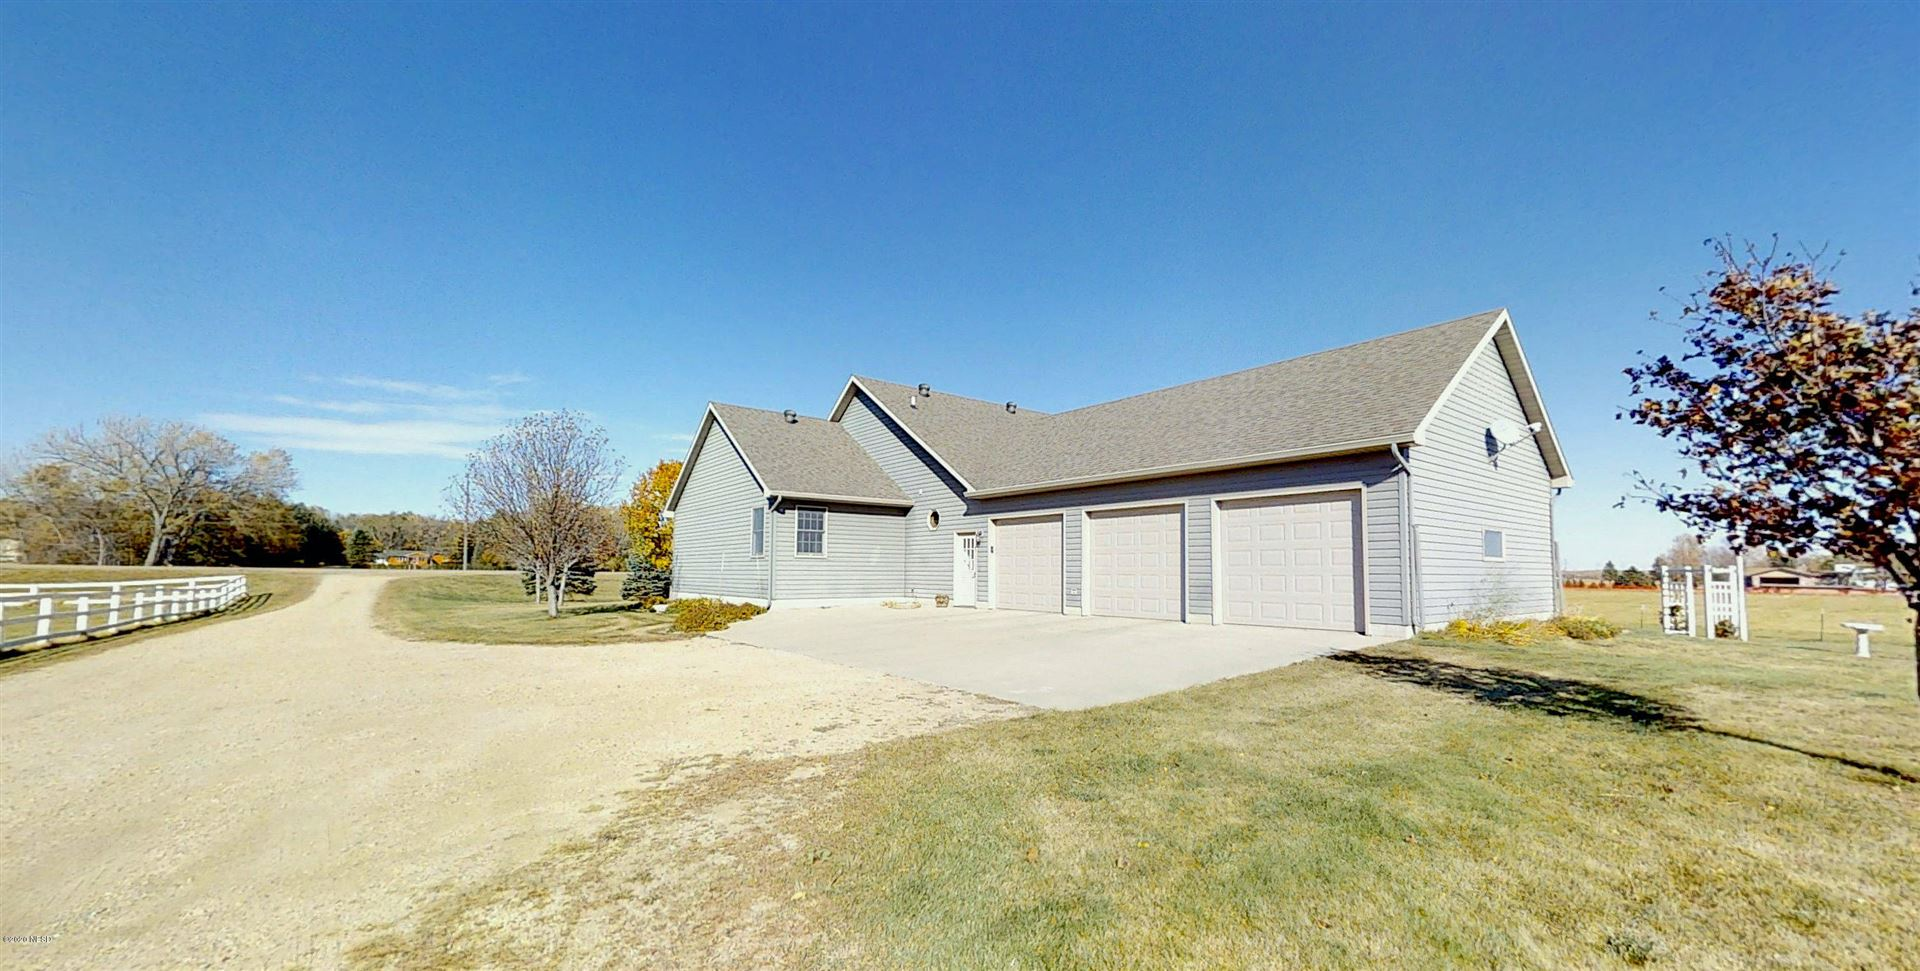 Photo of 44745 US-212 HIGHWAY, Watertown, SD 57201 (MLS # 22-1895)